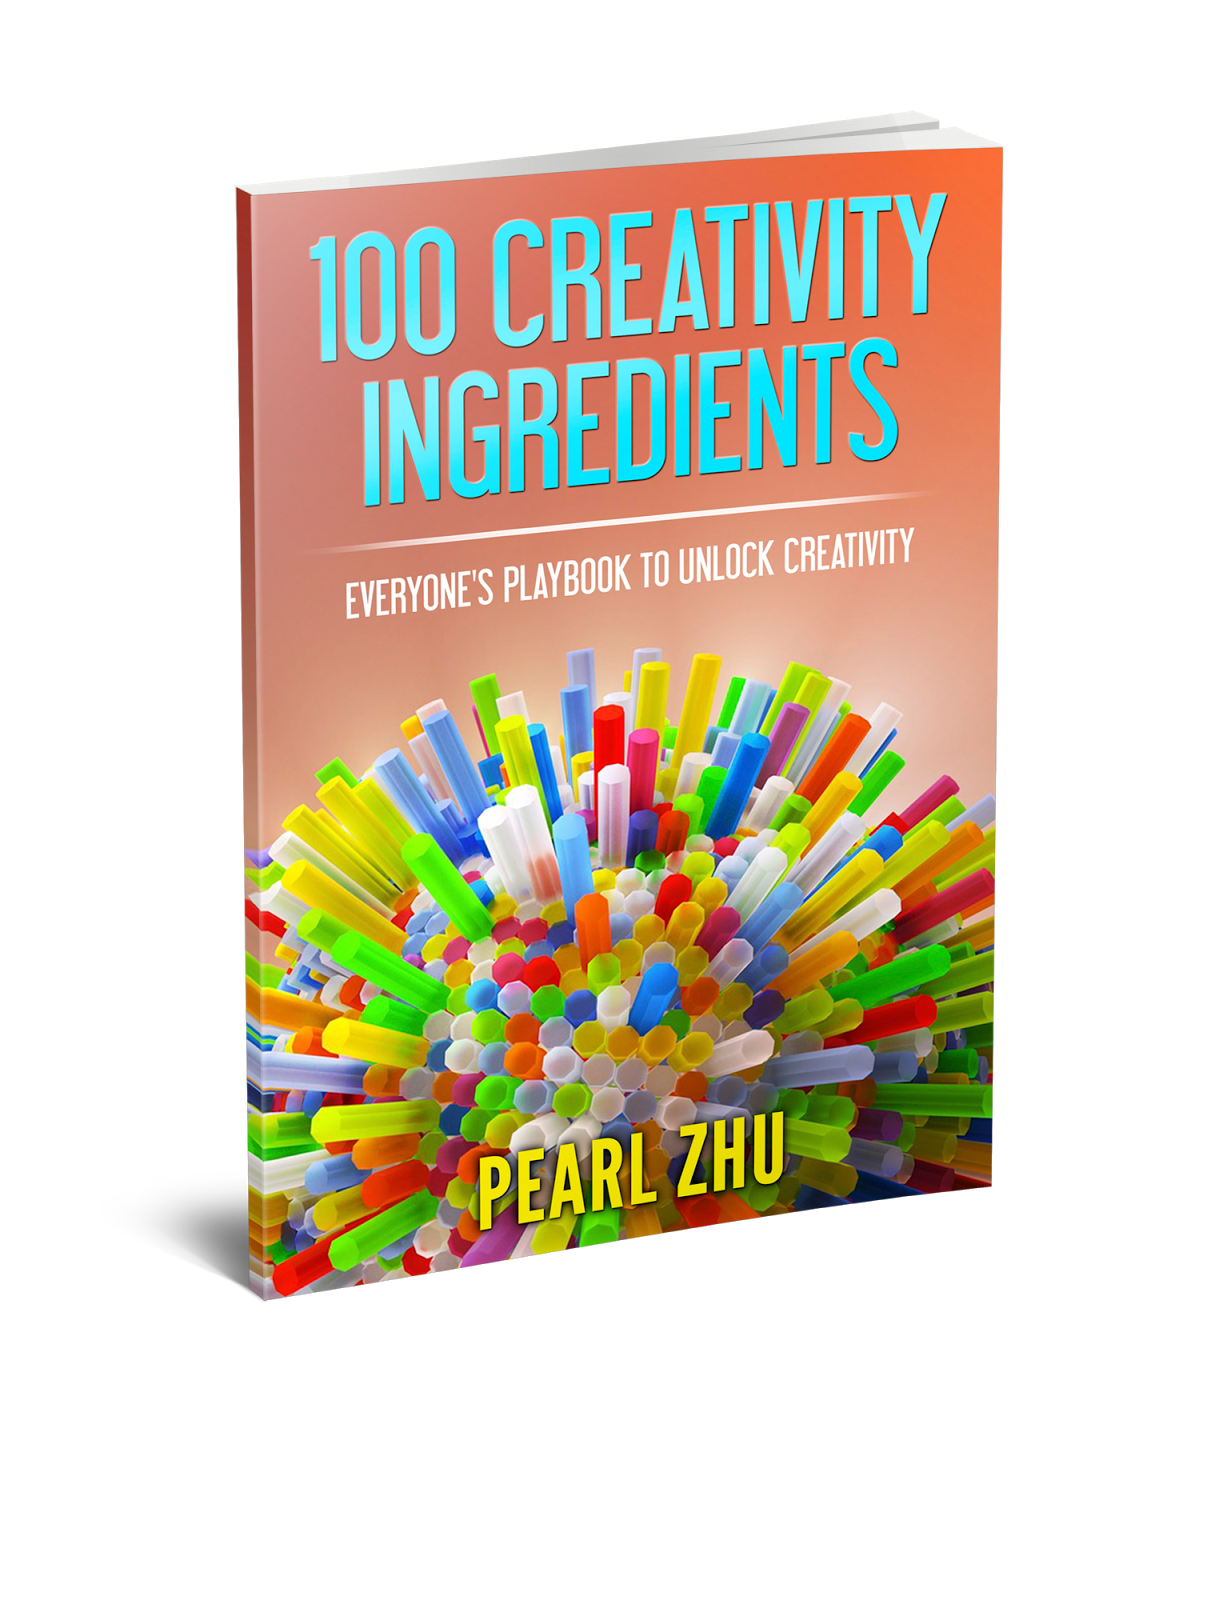 100 Creativity Ingredients